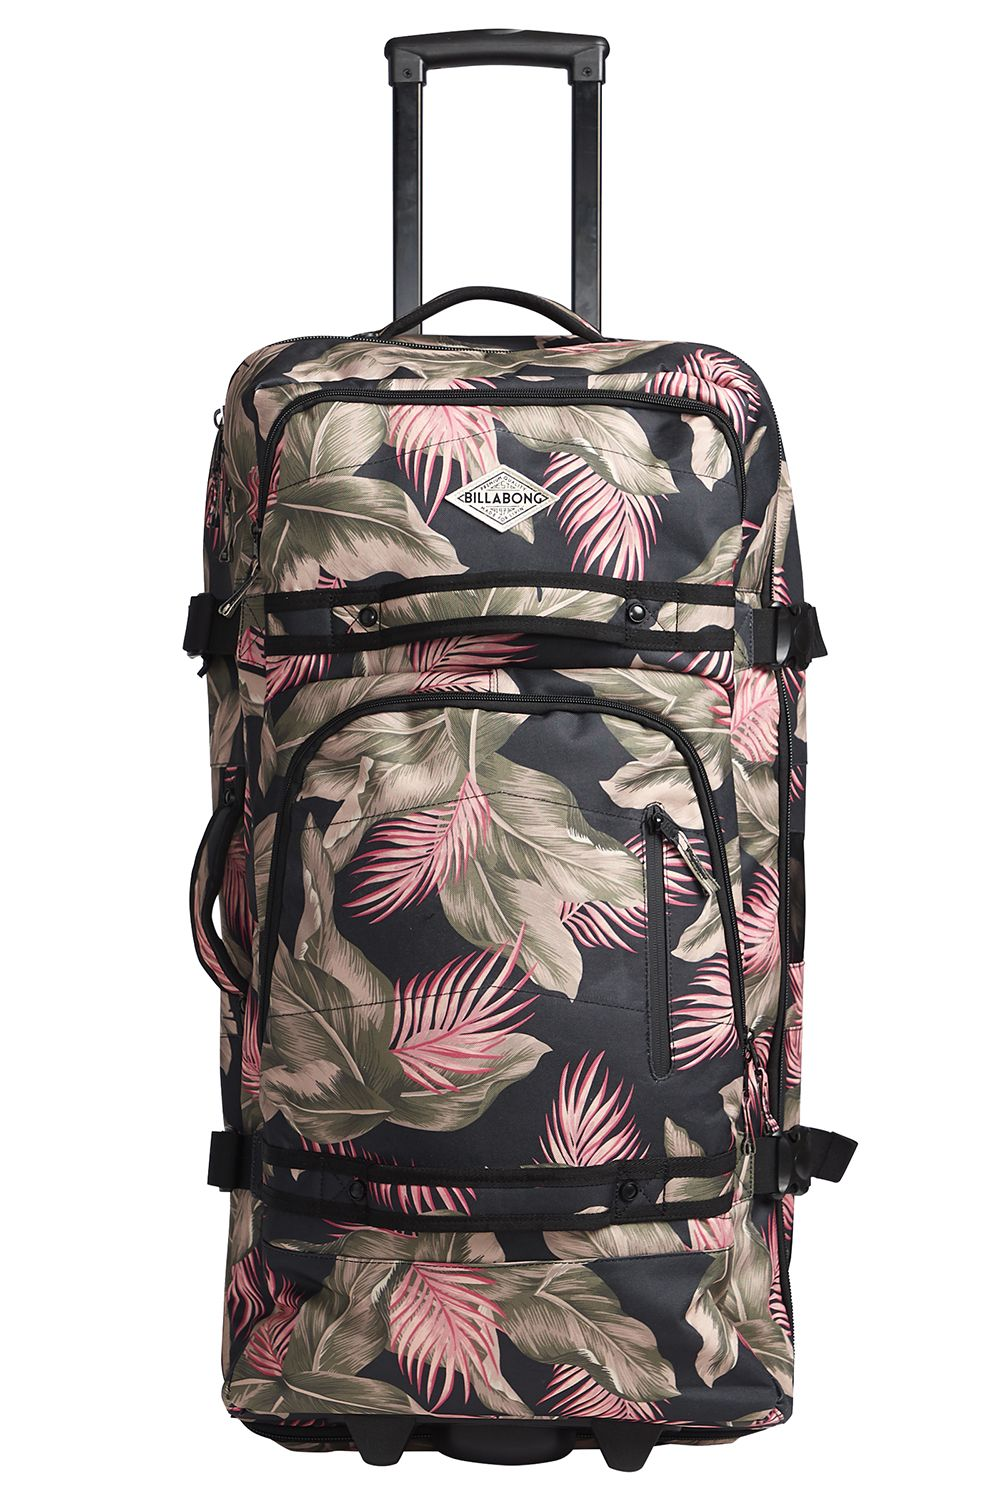 Mala Viagem Billabong KEEP IT ROLLIN Sage